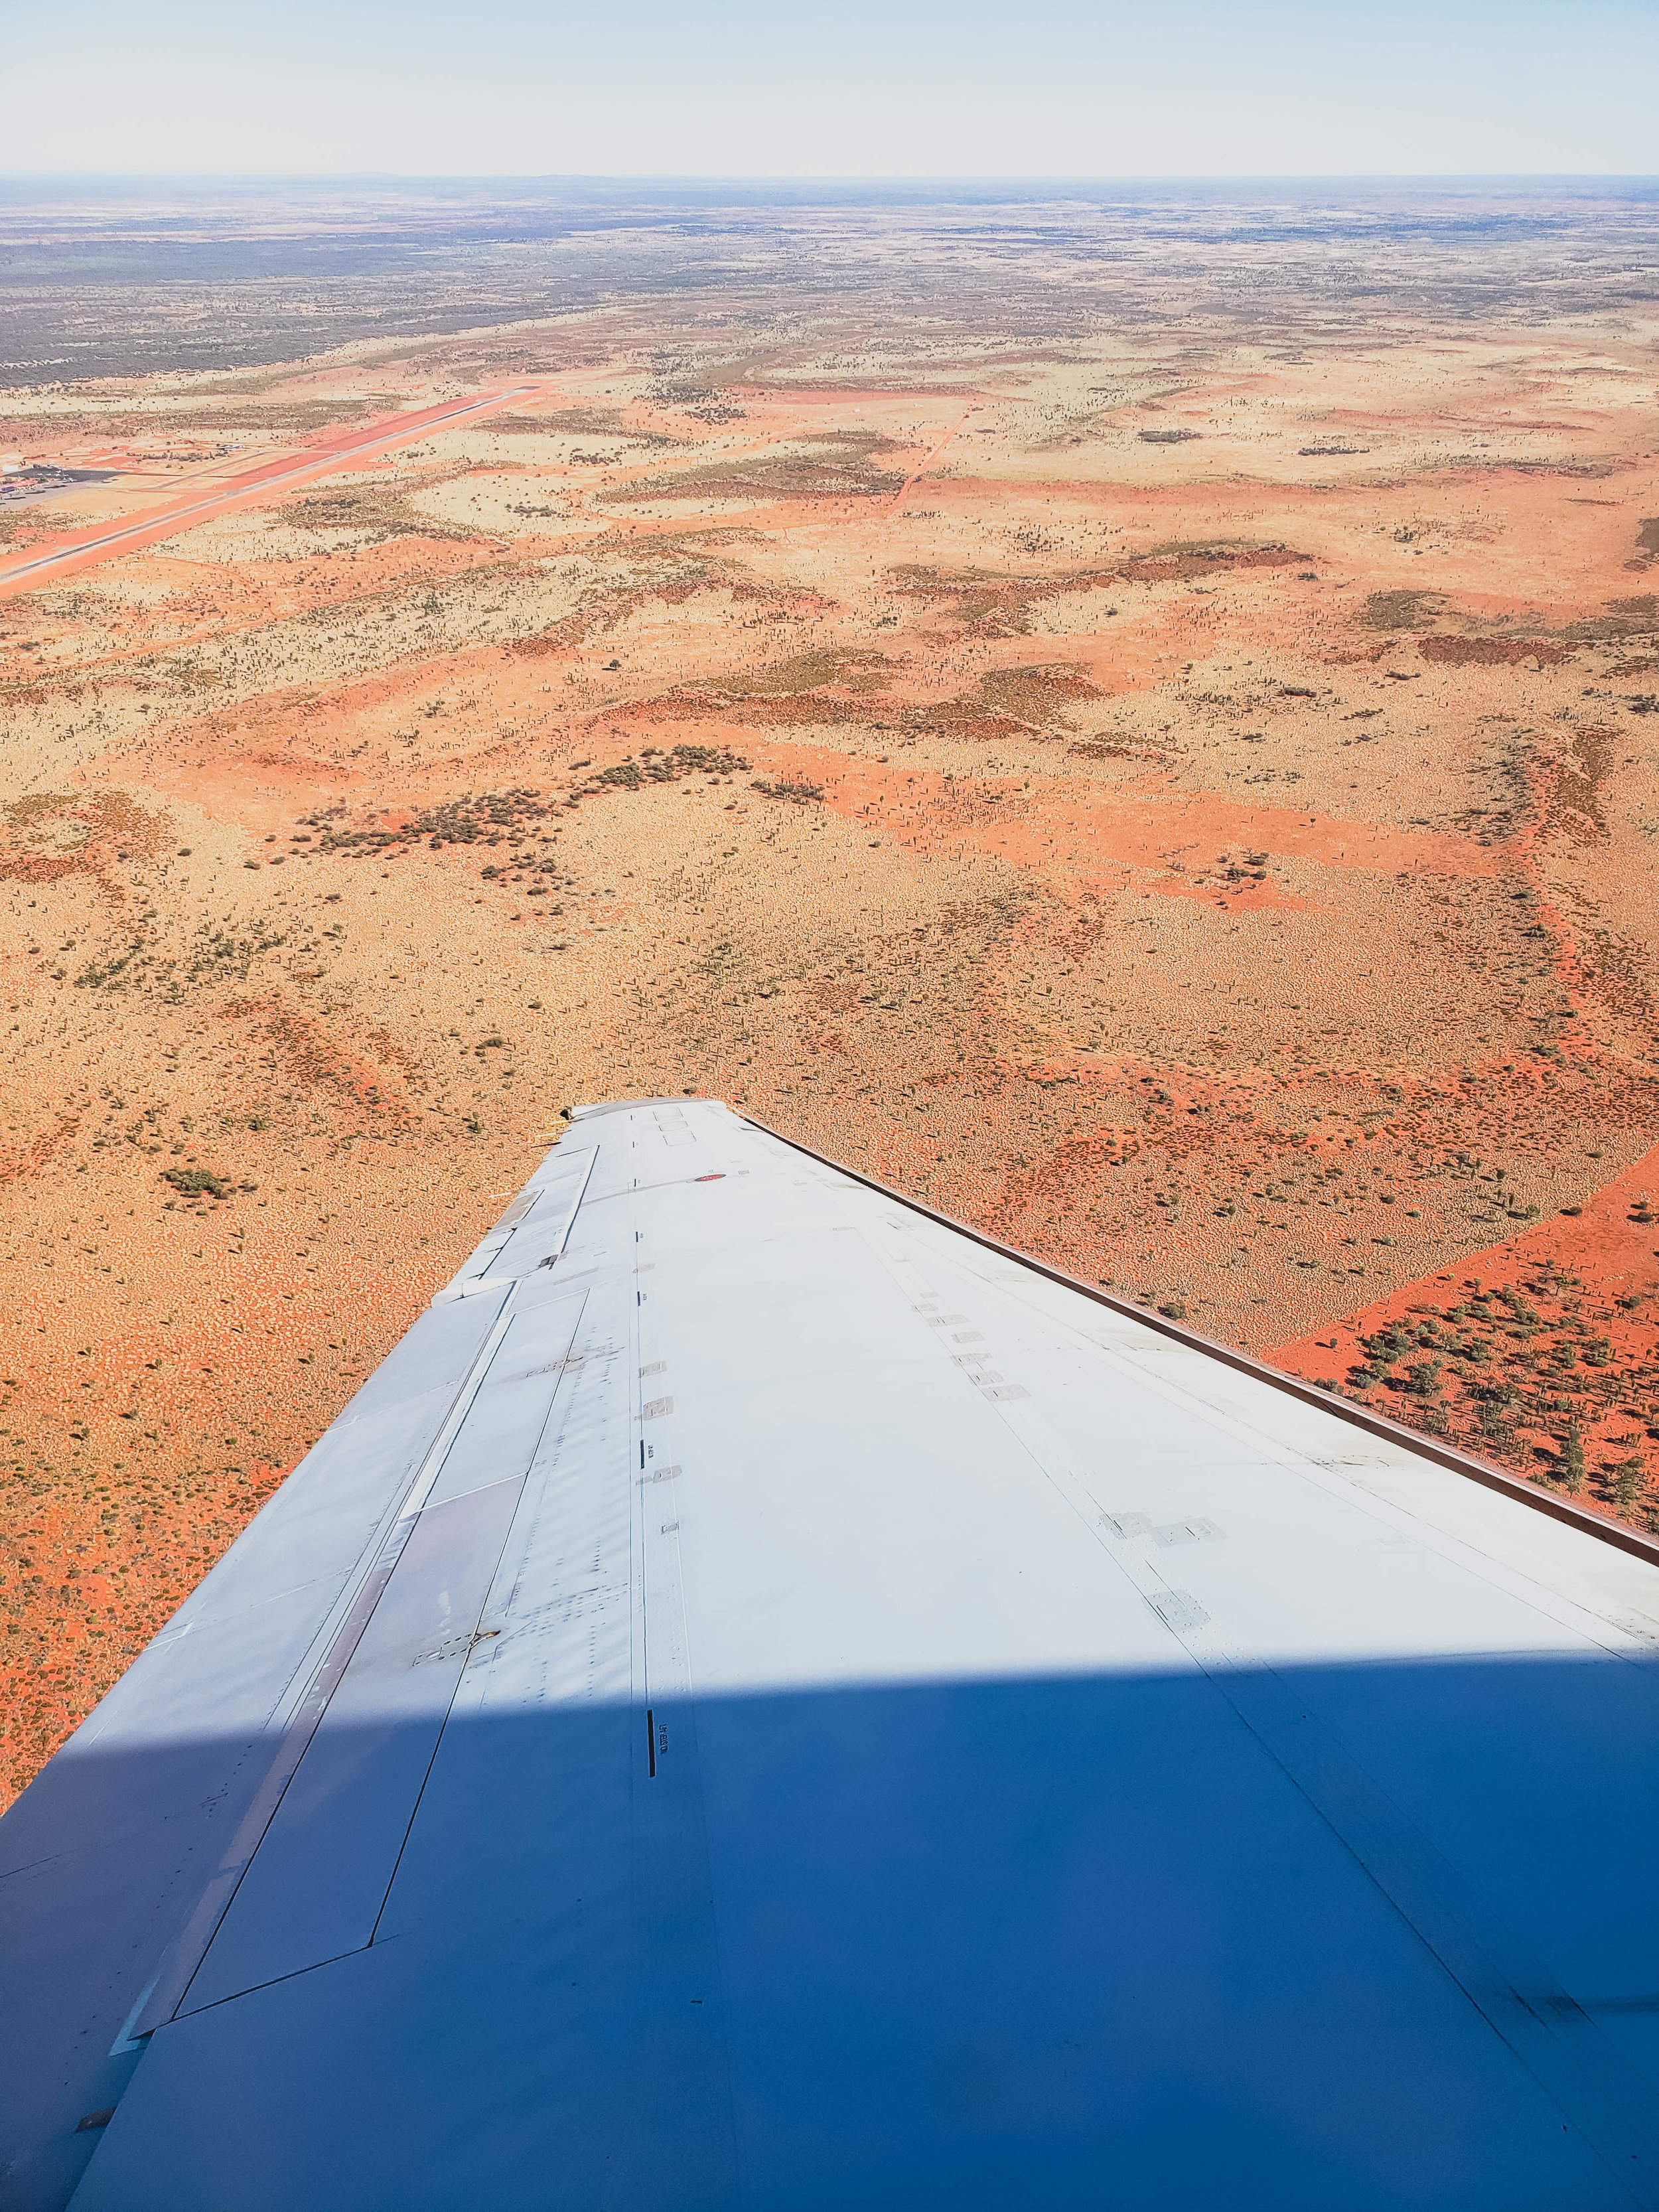 bye, red centre!